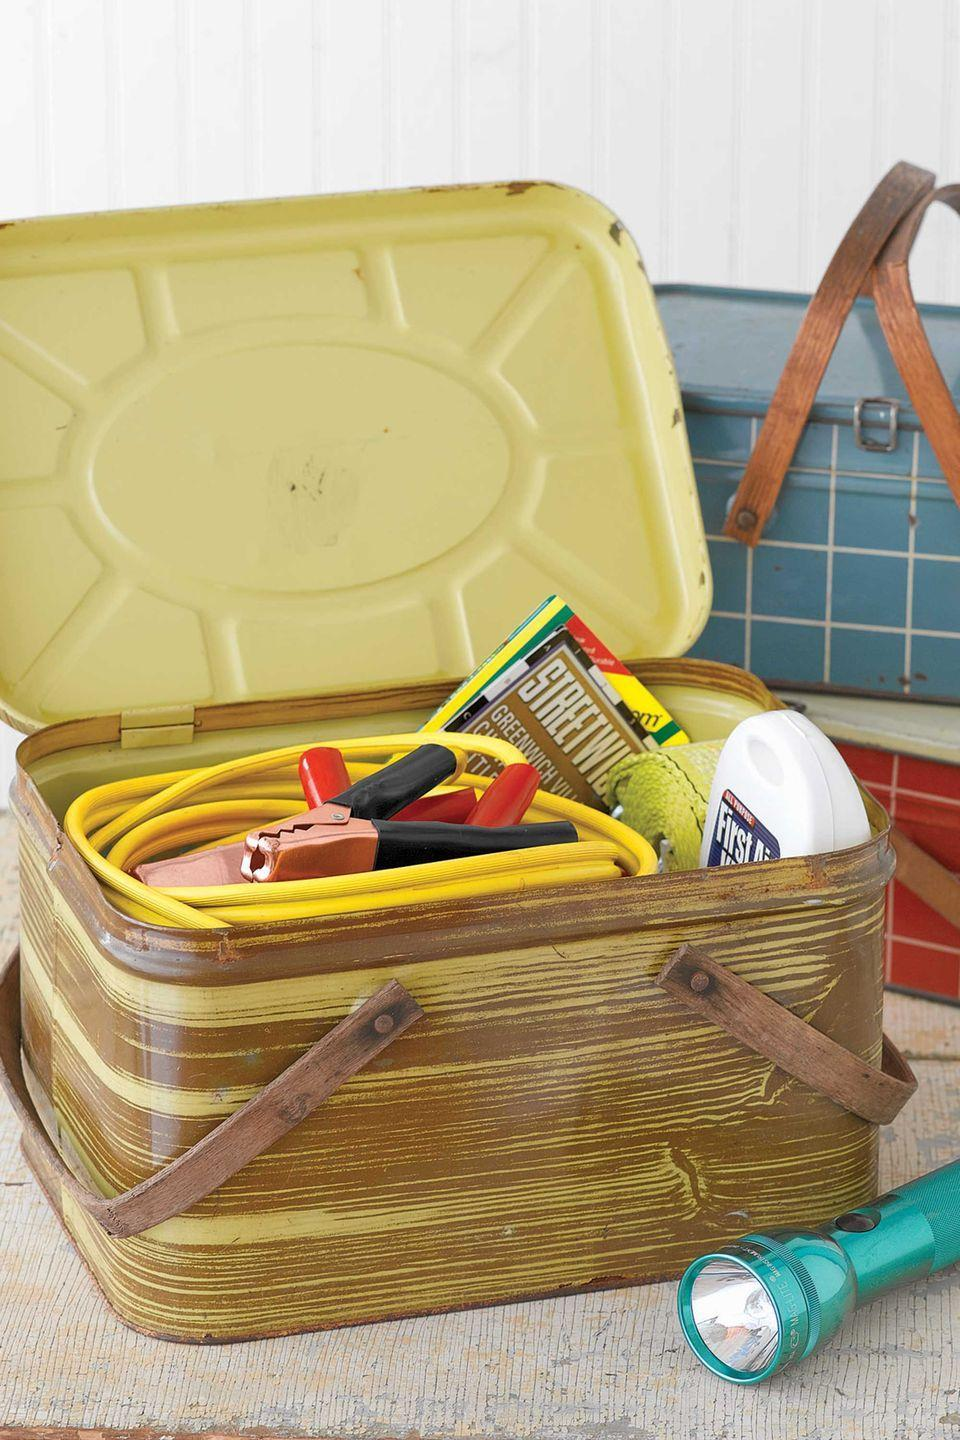 <p>Use a sturdy vintage basket to create an emergency kit for Dad's car. Lithographed tin picnic baskets with swing handles, which were originally made from the 1930s through the 1950s, are now popular collectibles. Simply fill with jumper cables, road flares, a first aid kit and other essentials to stow in the trunk.</p>